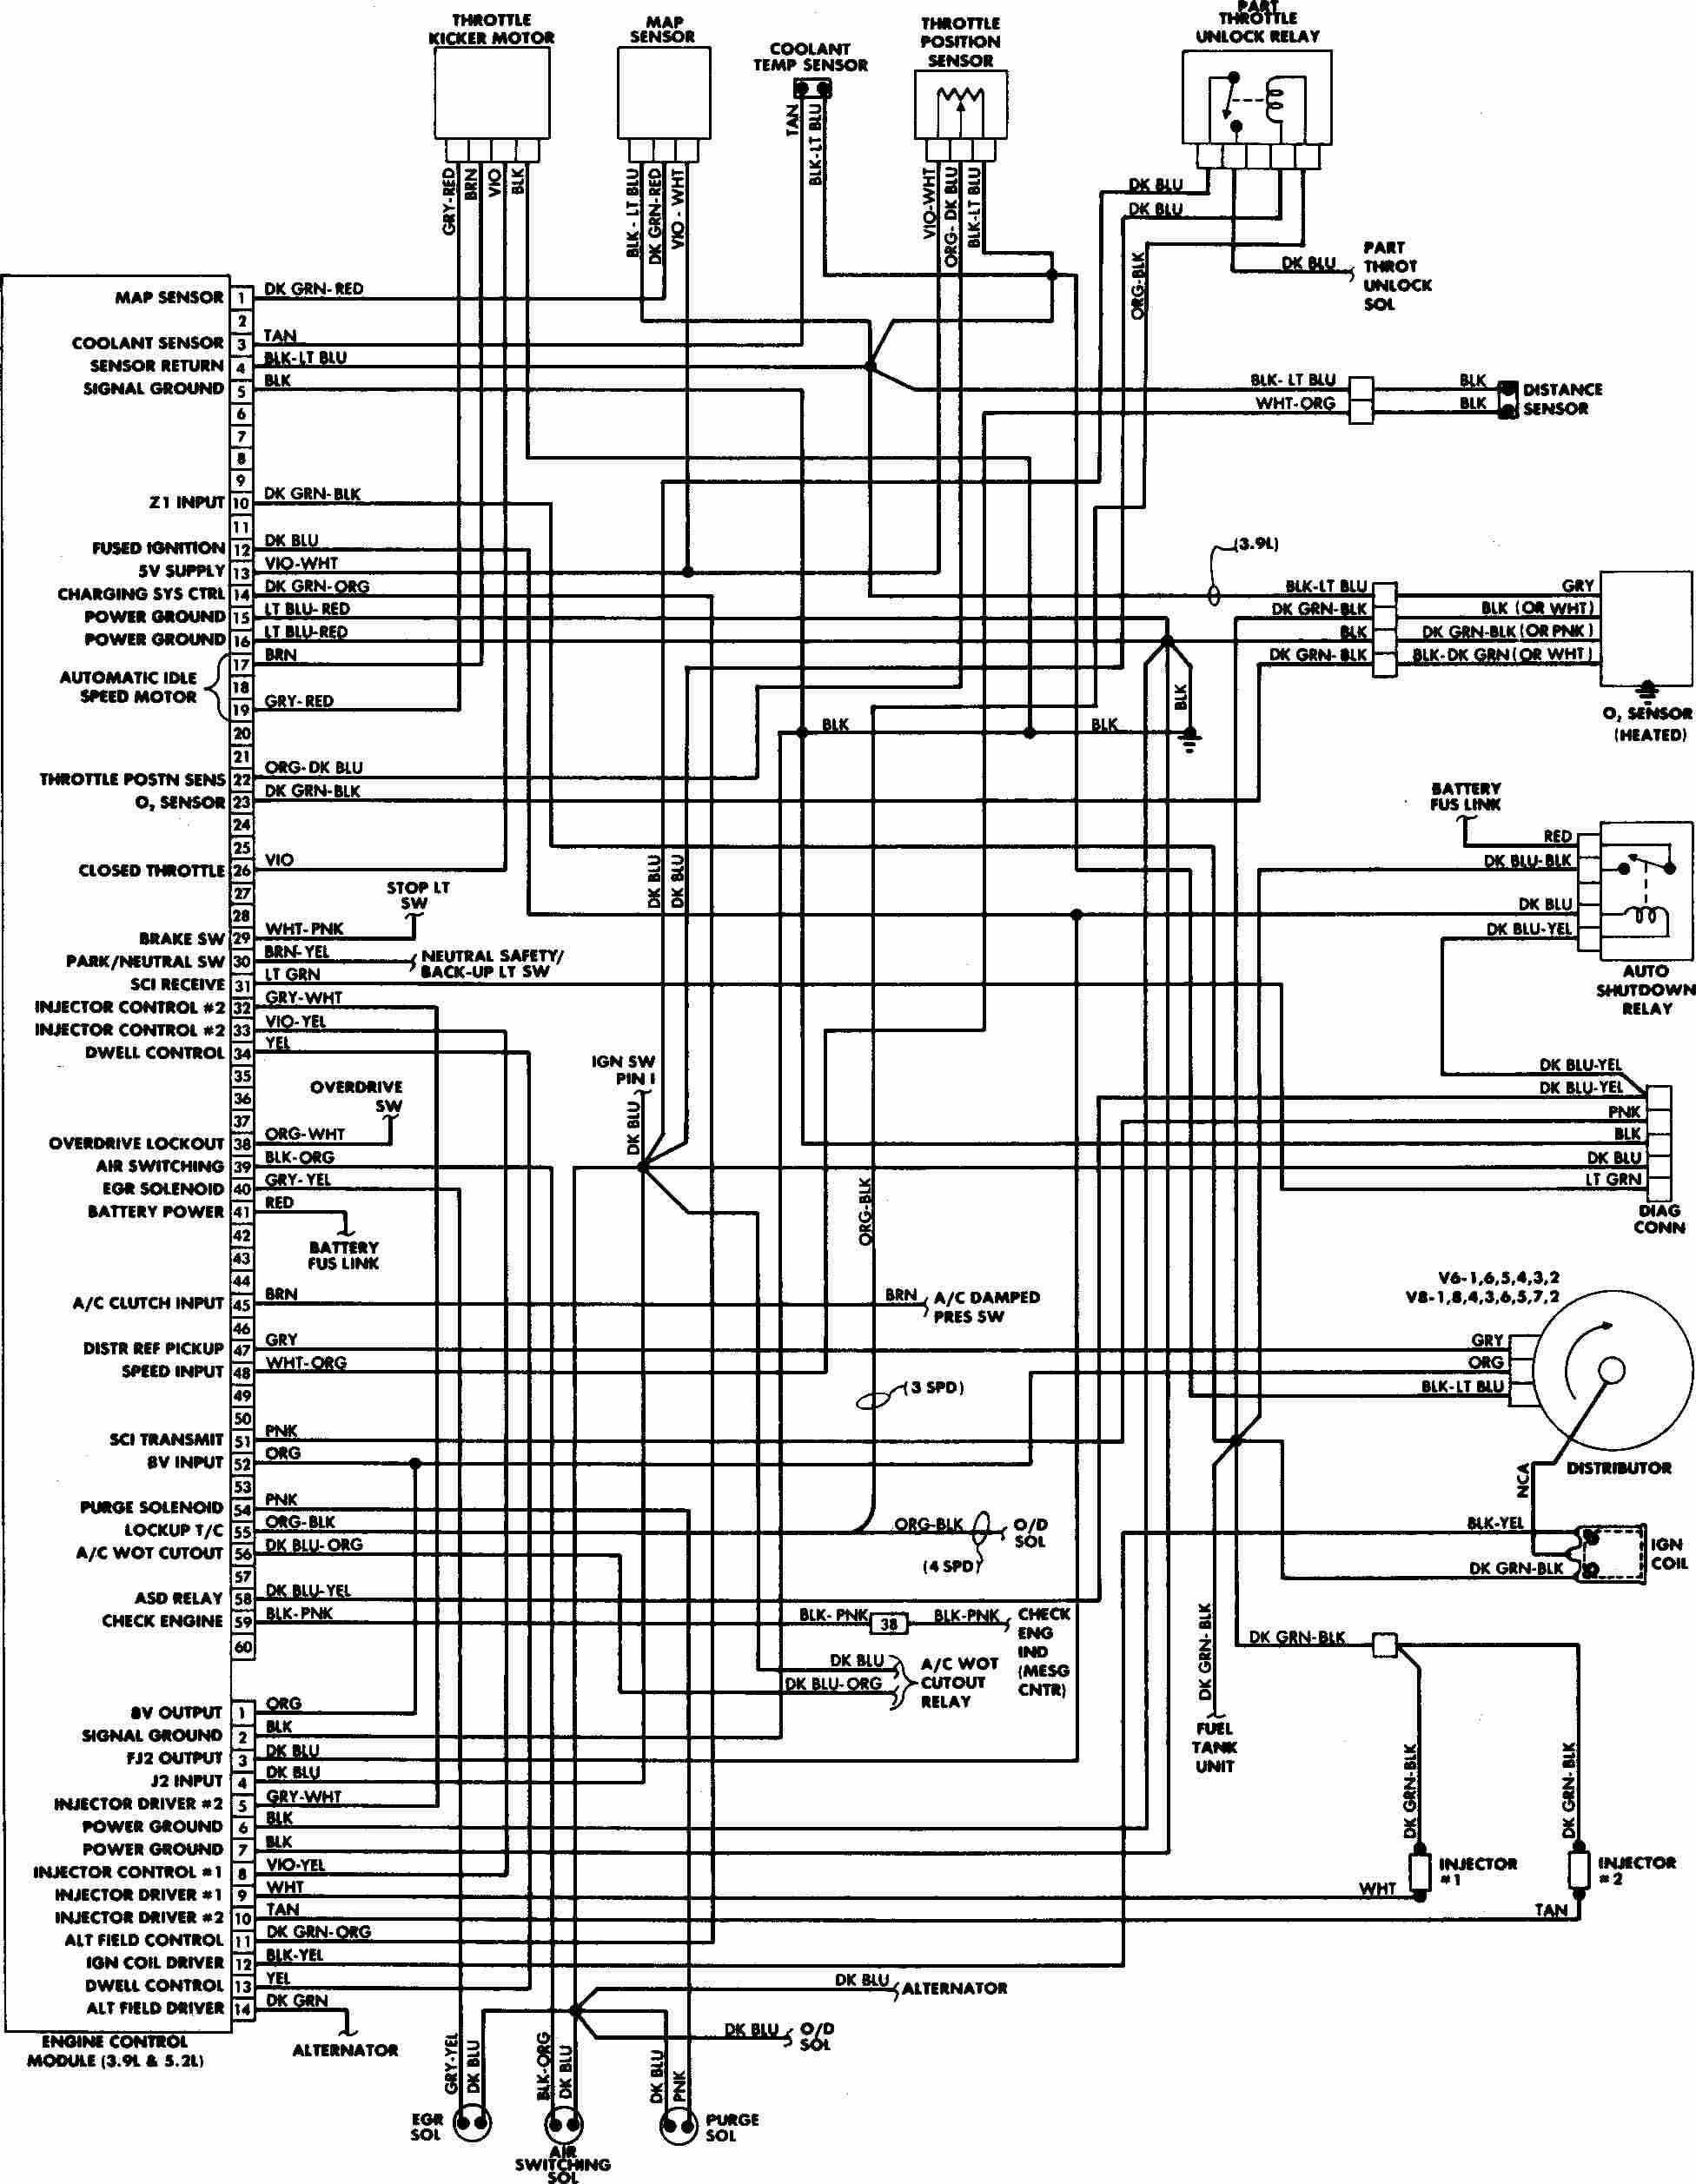 mbf_584] dodge neon wiring harness diagram | movar wiring diagram total |  movar.domaza.mx  domaza.mx